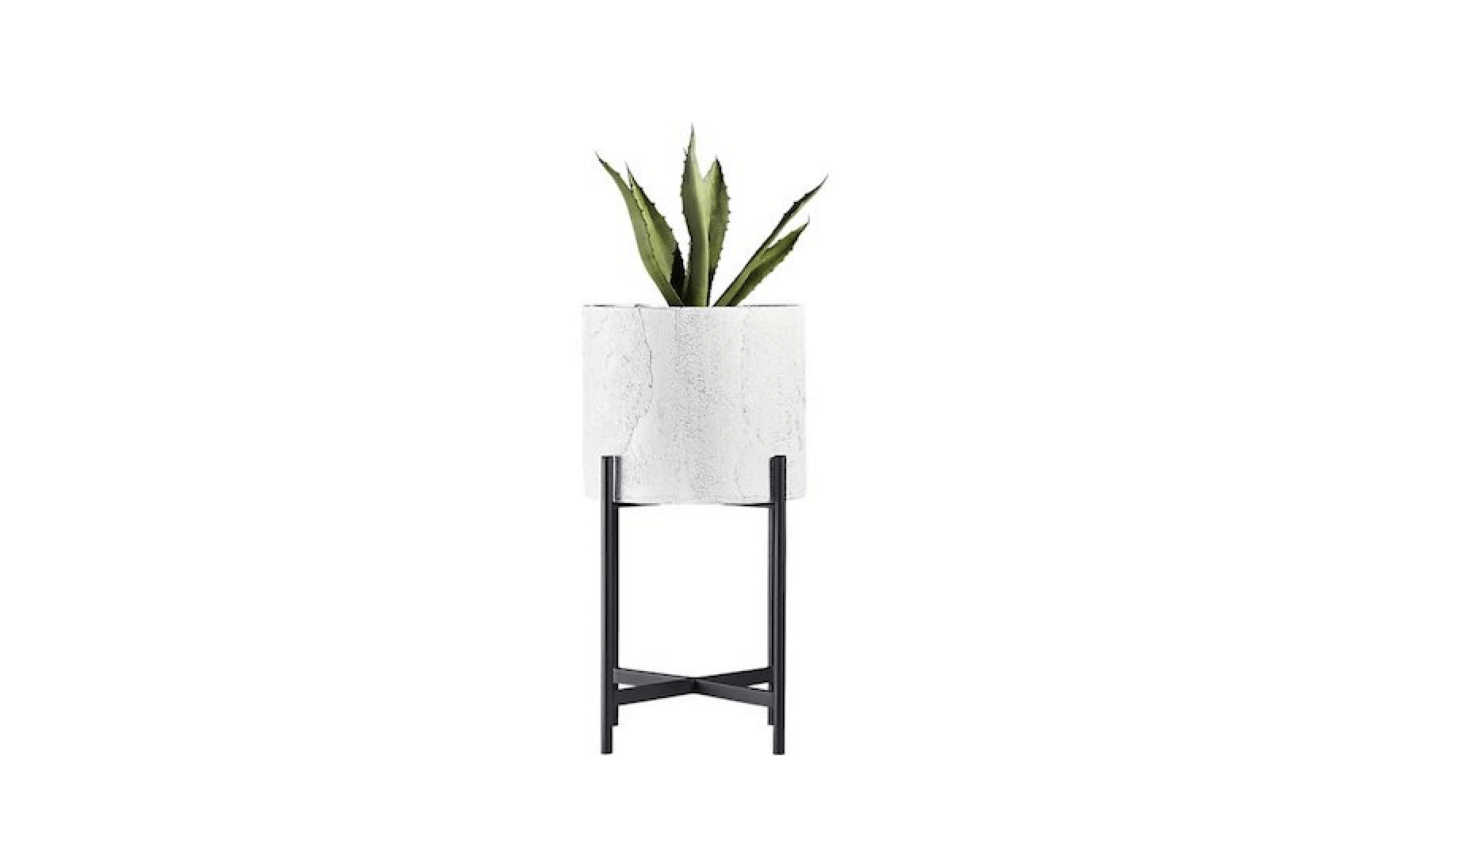 Midcentury Modern Cylinder Planters 10 Stylish Pots For